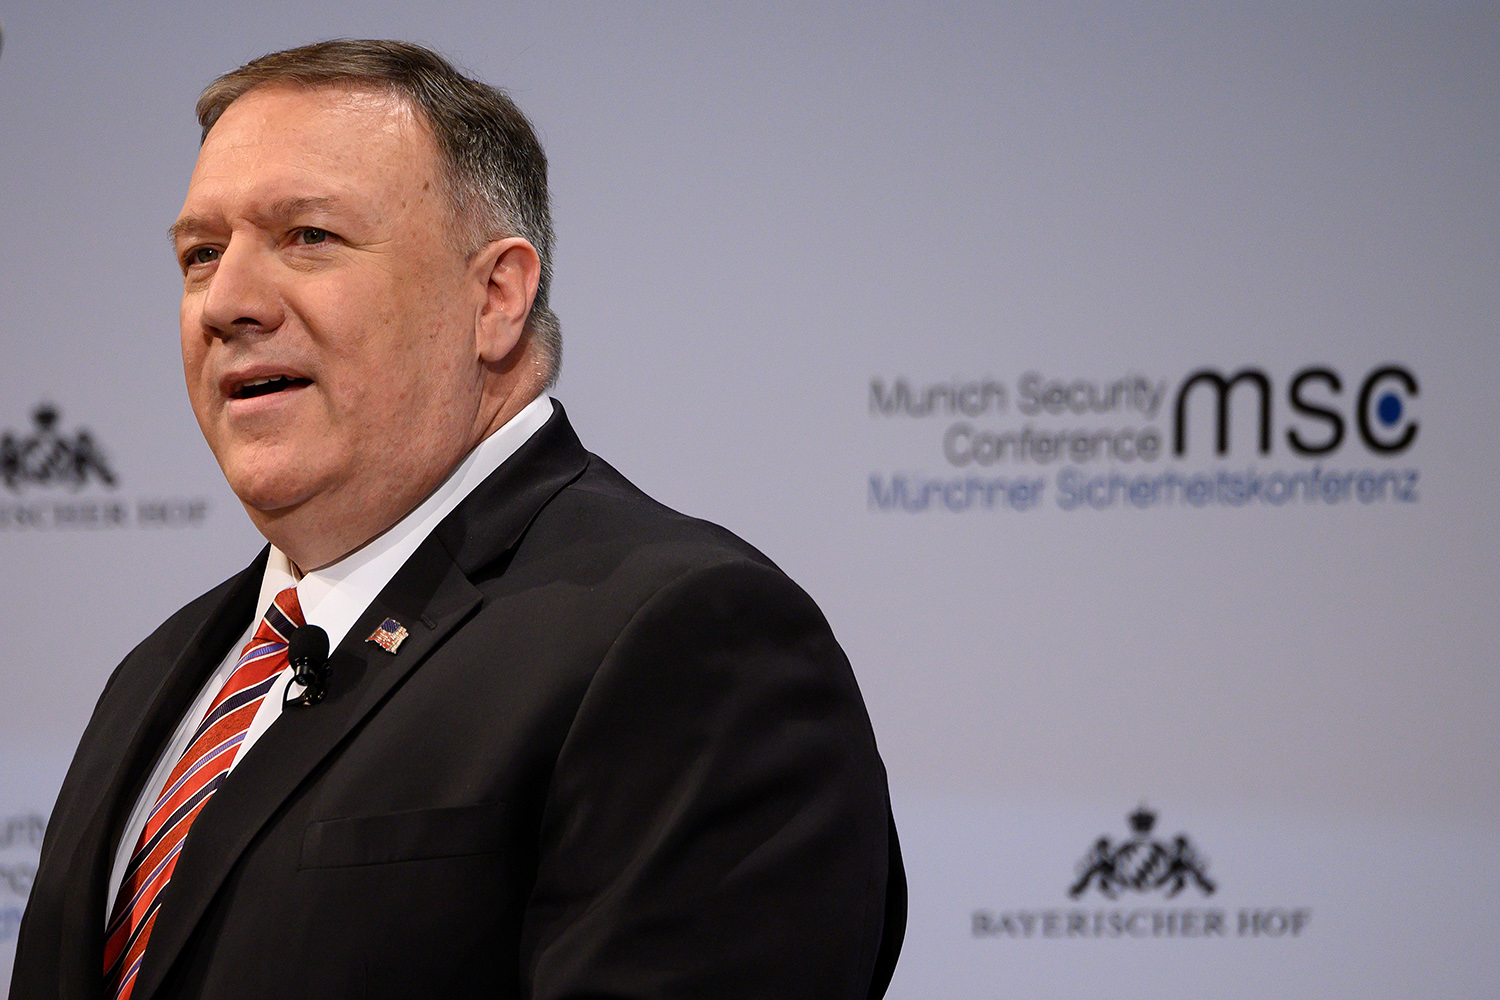 Secretary Mike Pompeo